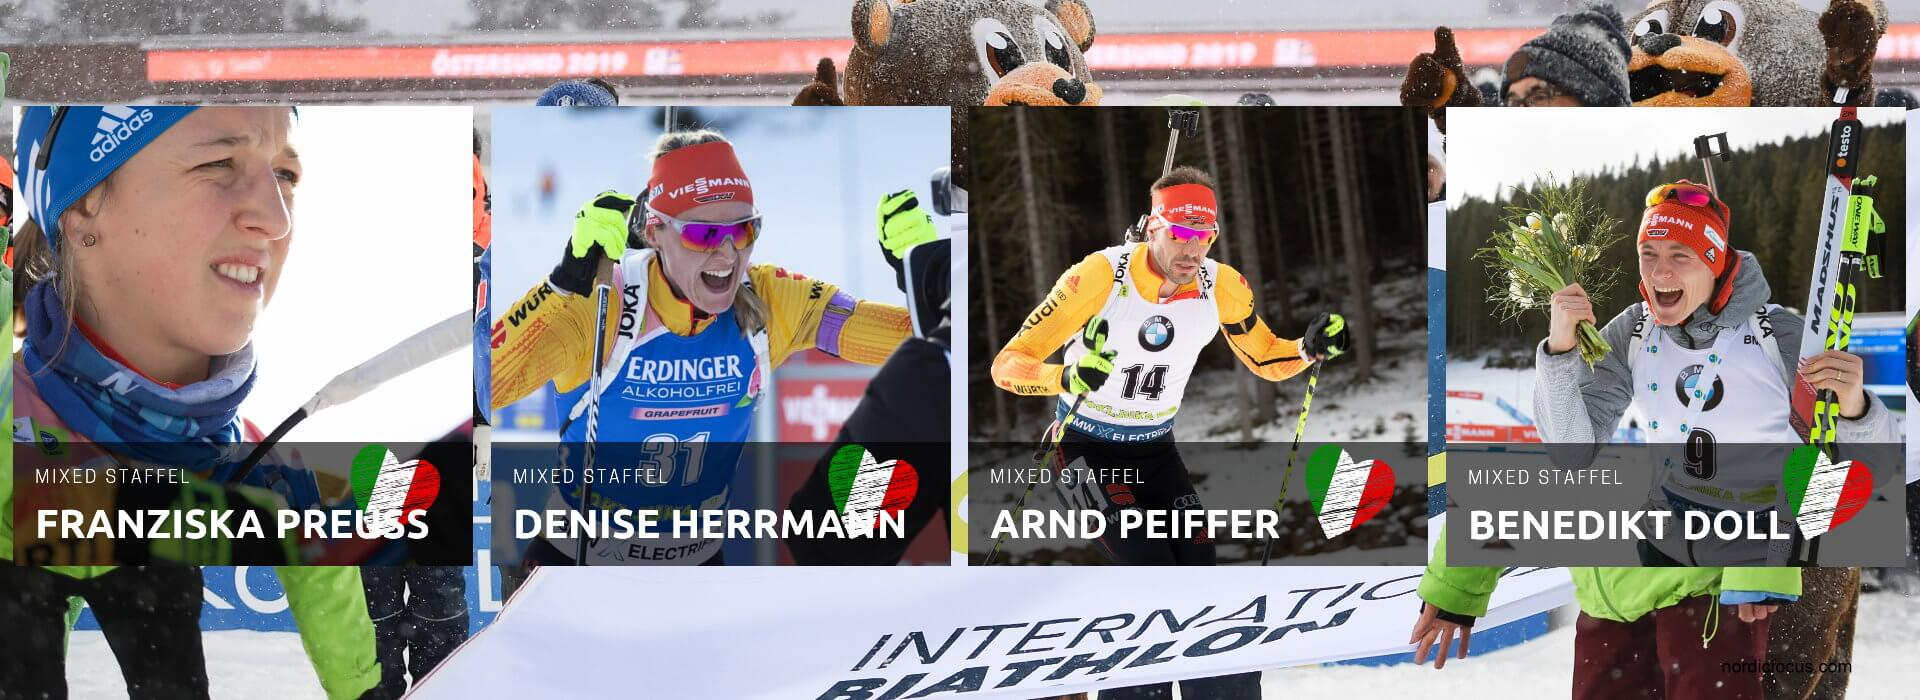 WM Antholz Mixed Staffel Deutschland